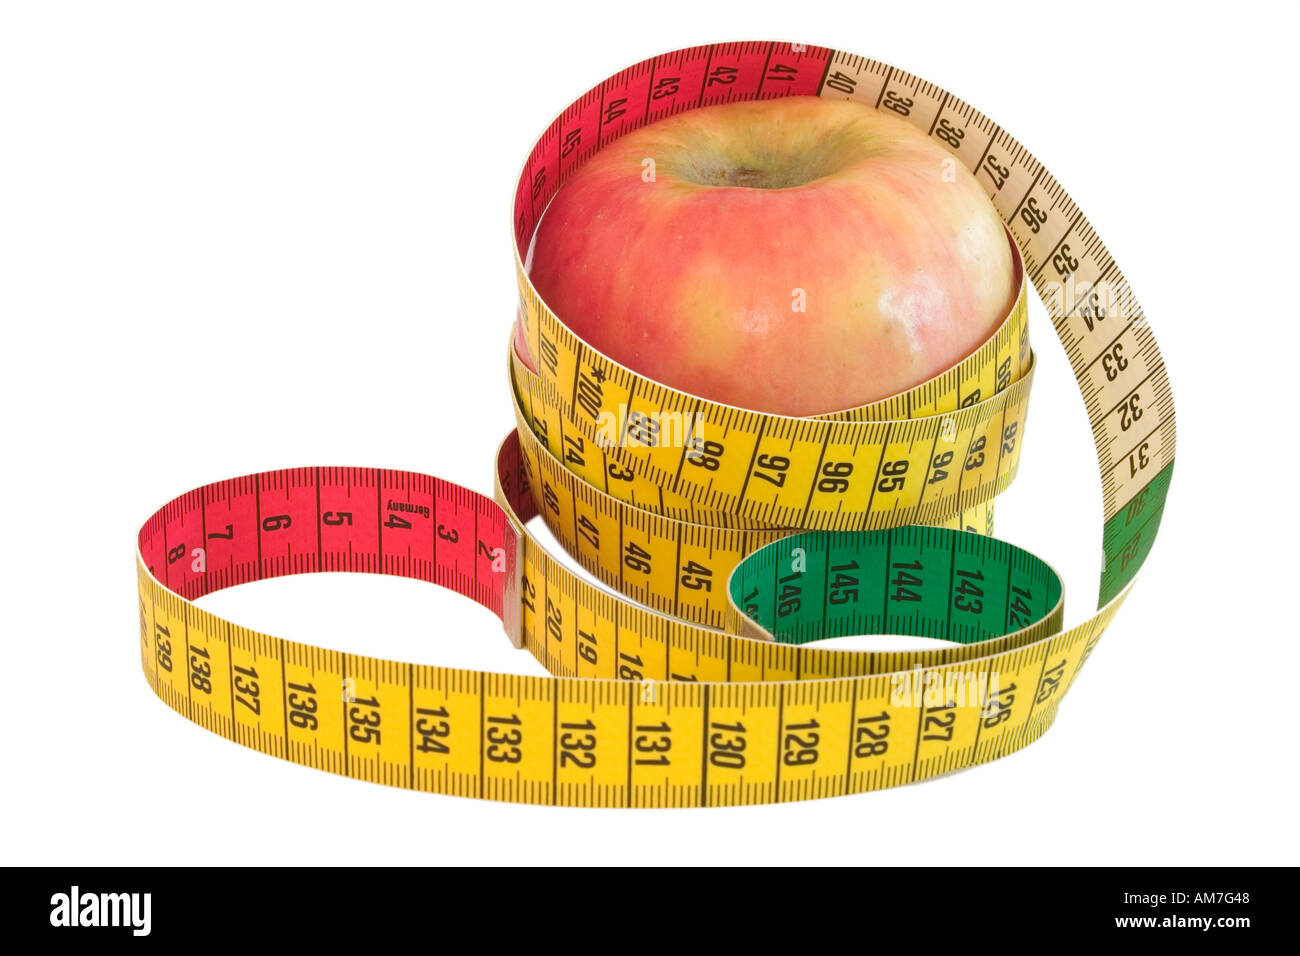 A tape measure wrapped around an apple isolated on a white background - Stock Image